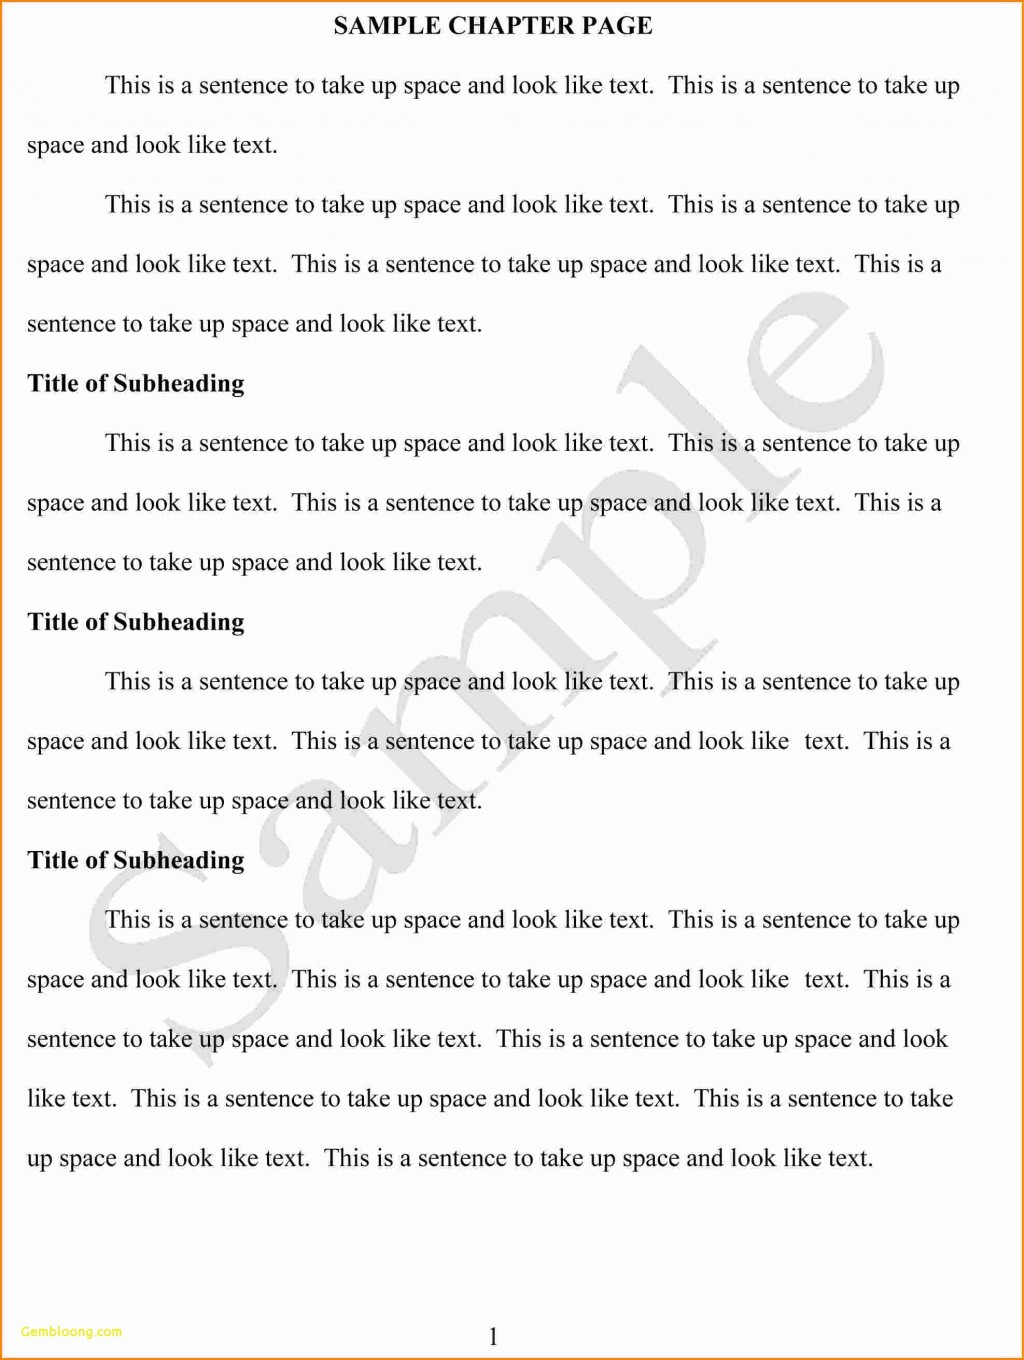 024 Process Paper Essay How To Write An Appendix20n Truancy Of Recycling Outline Example20 Research Appendices In Stupendous Sample Appendix Meaning Example Large